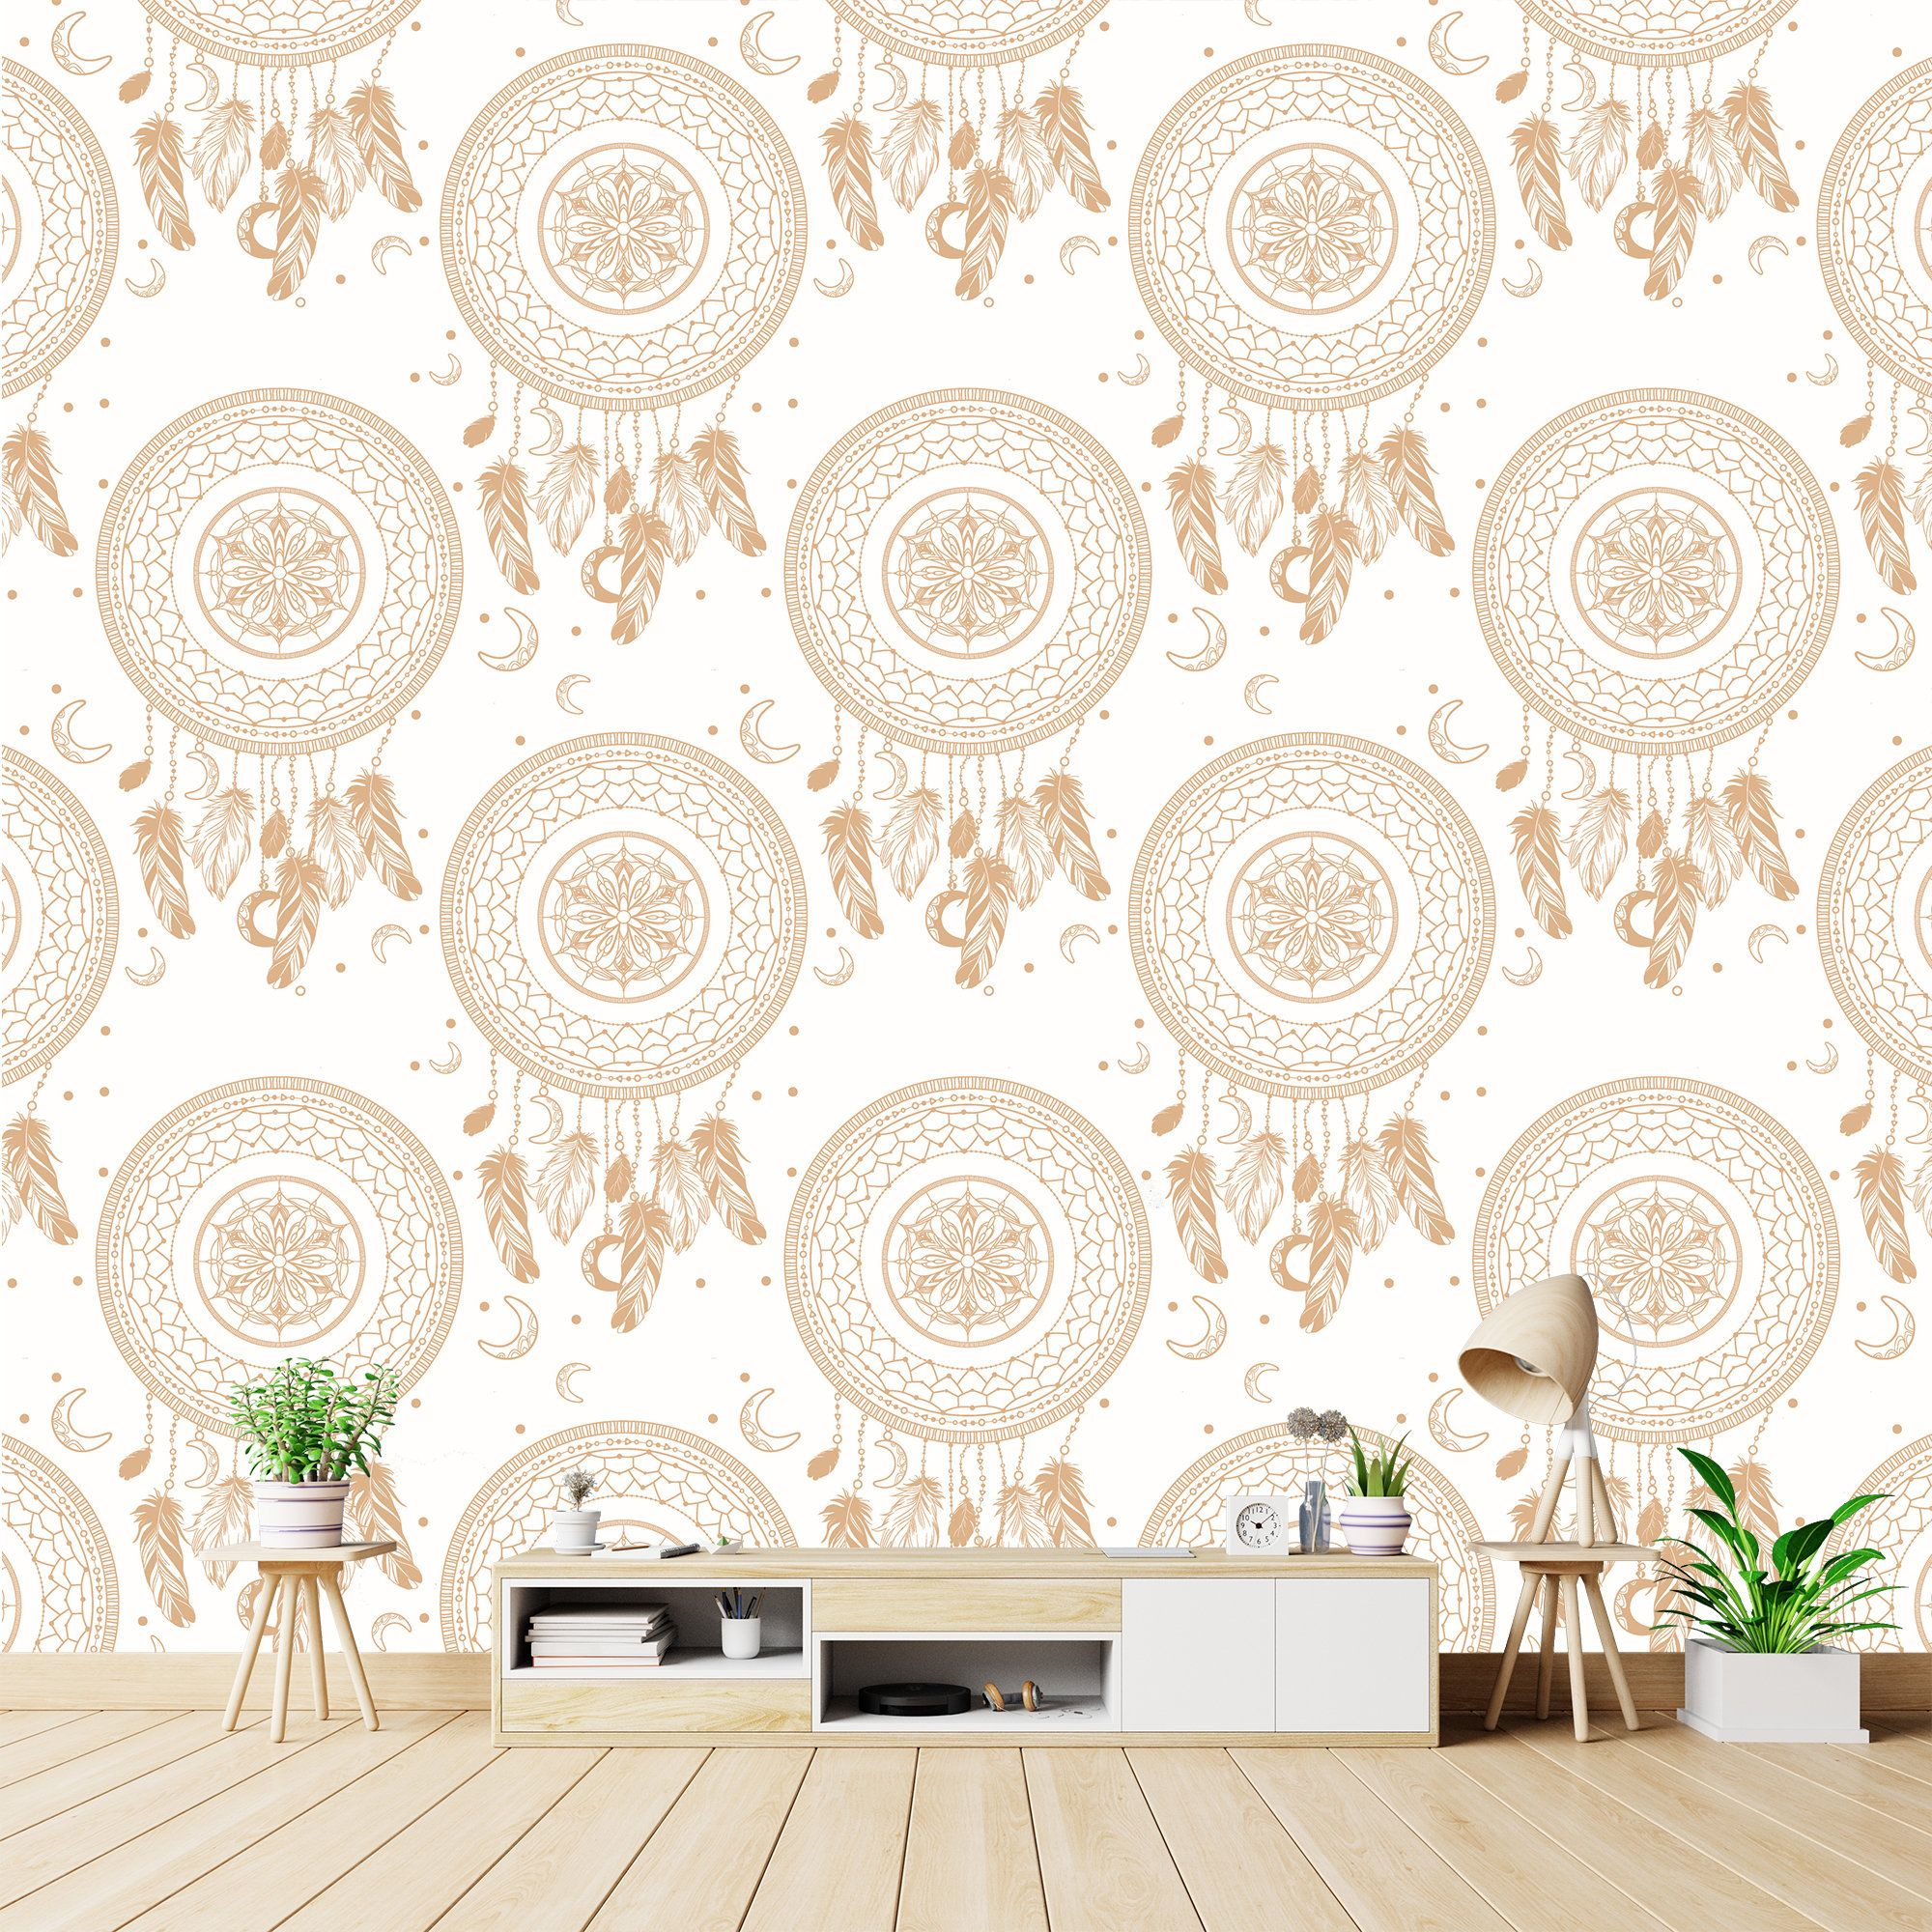 Bohemian Wallpaper Removable Wallpaper Dream Catcher Wall Mural Peel Stick Made In Europe Sel Bohemian Wallpaper Removable Wallpaper Boho Wallpaper